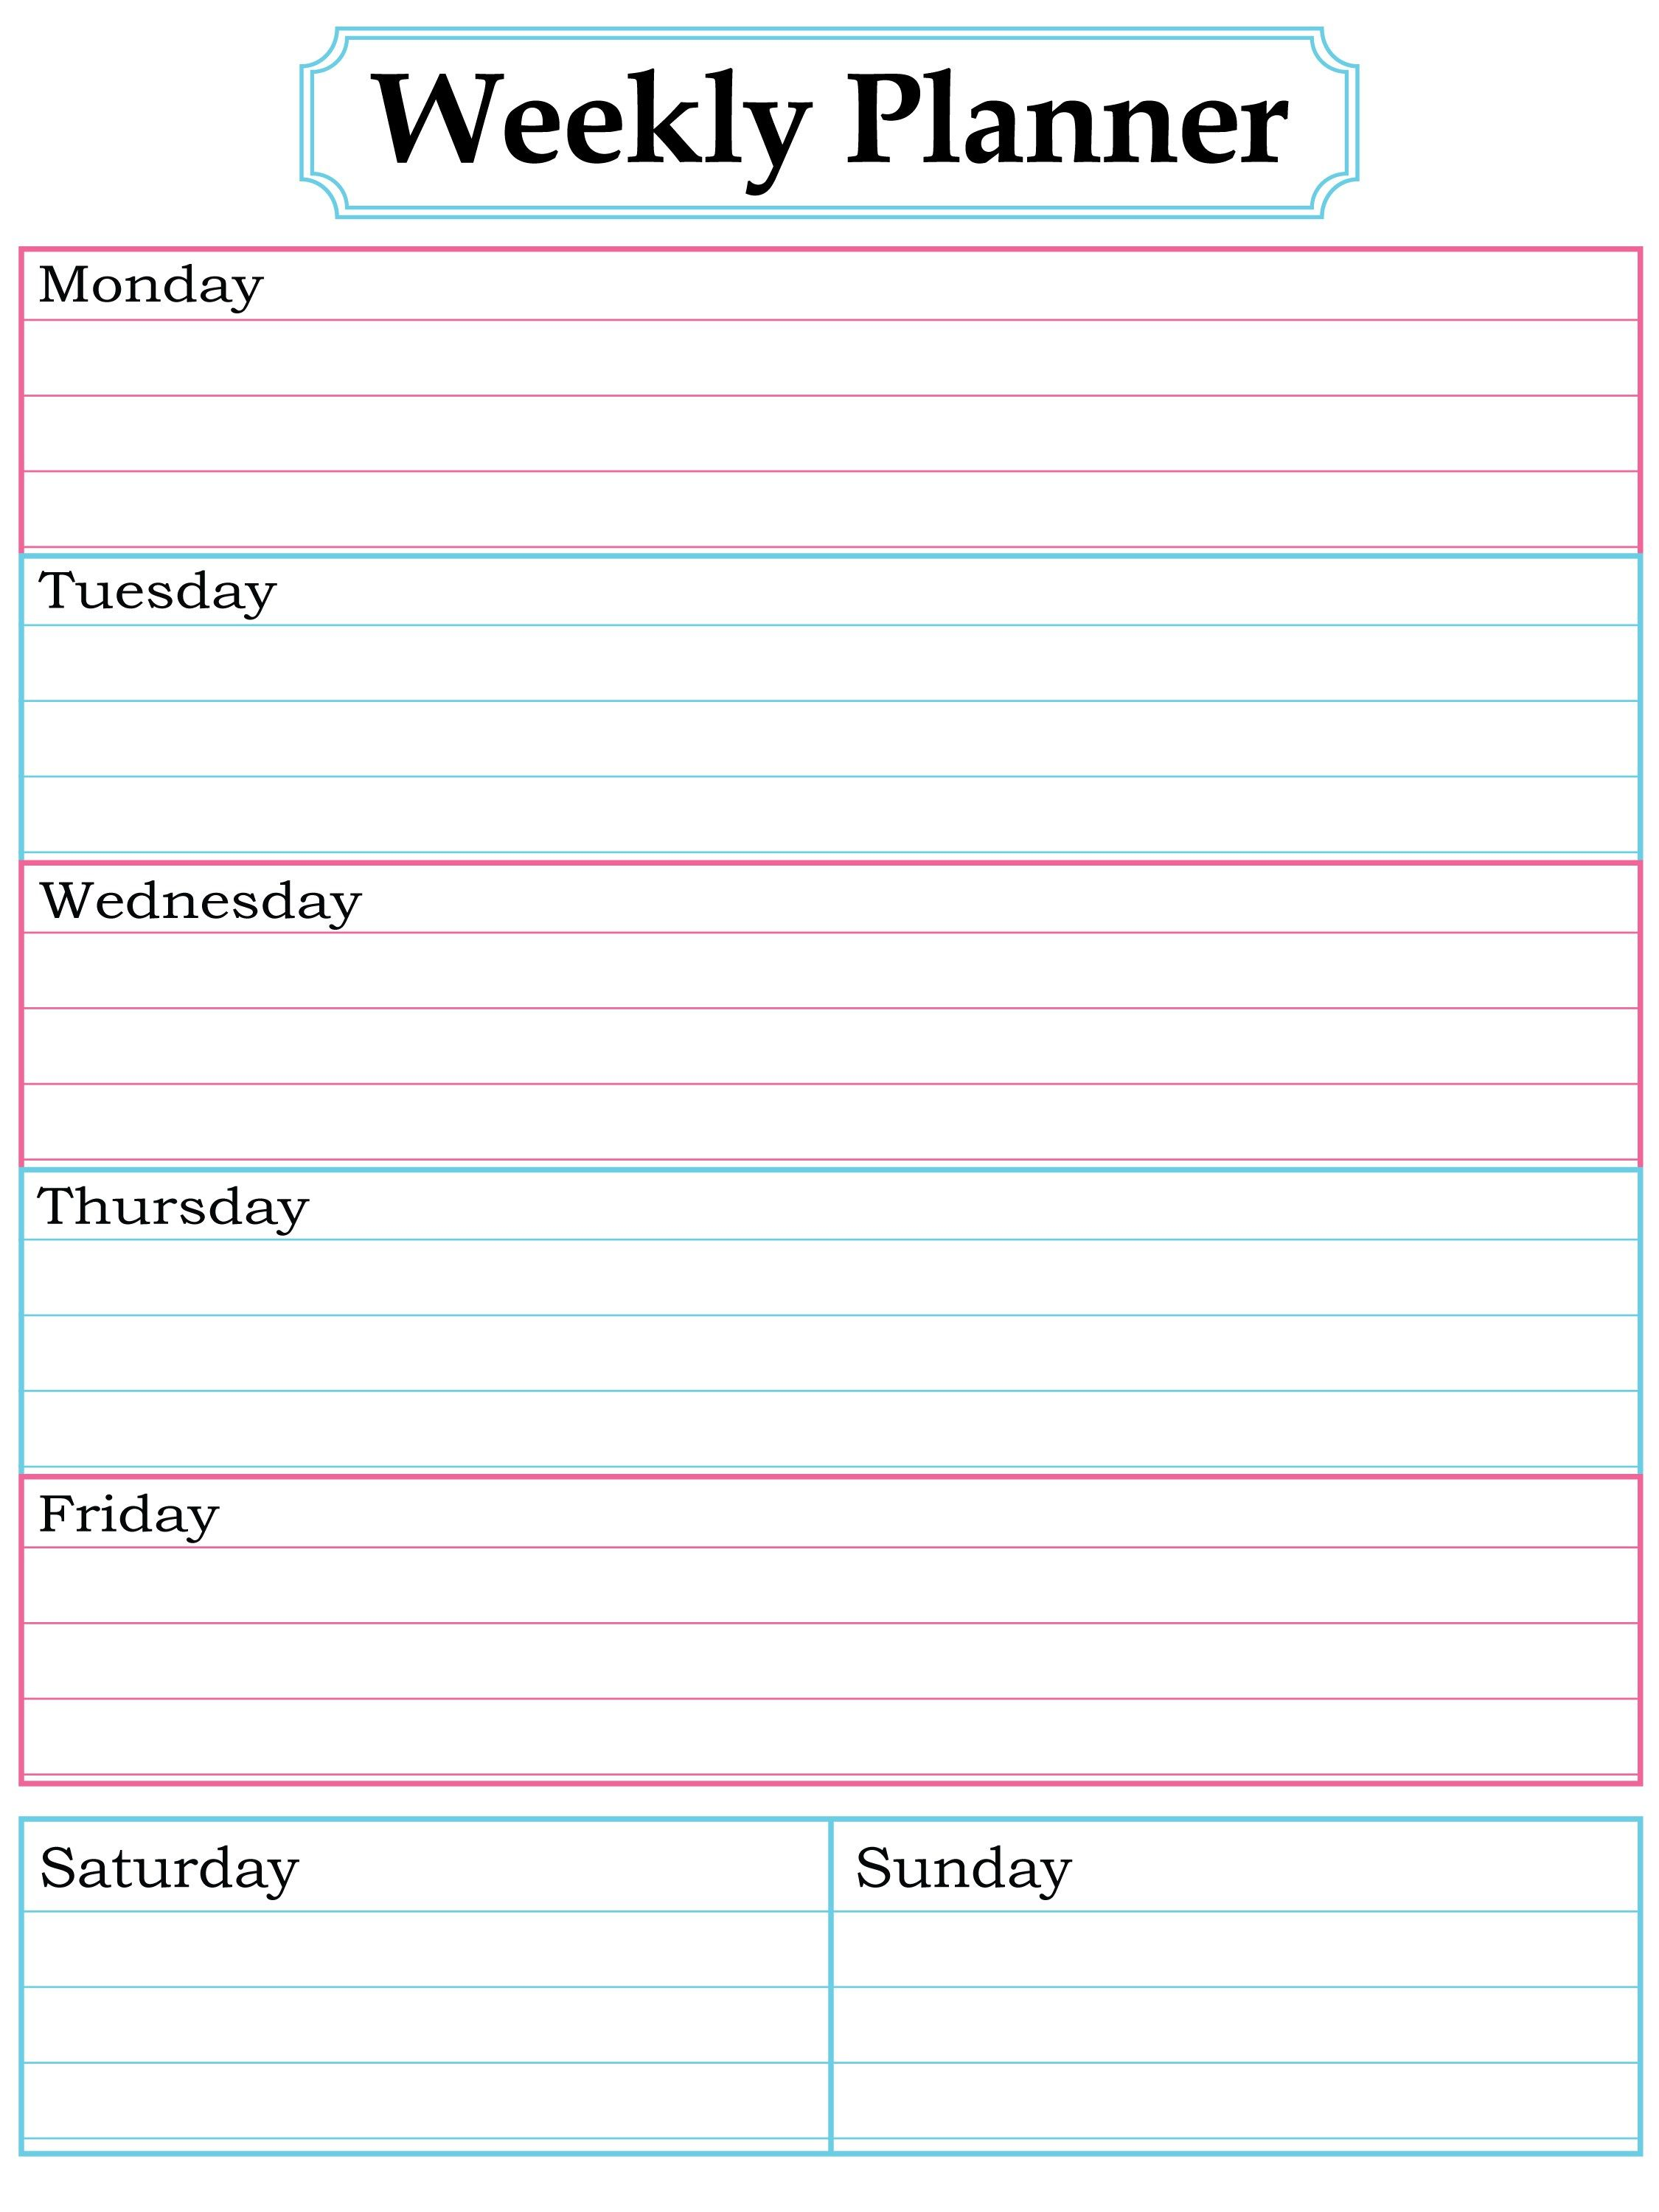 Daily Planner Template Printable Free Printable Daily Calendar